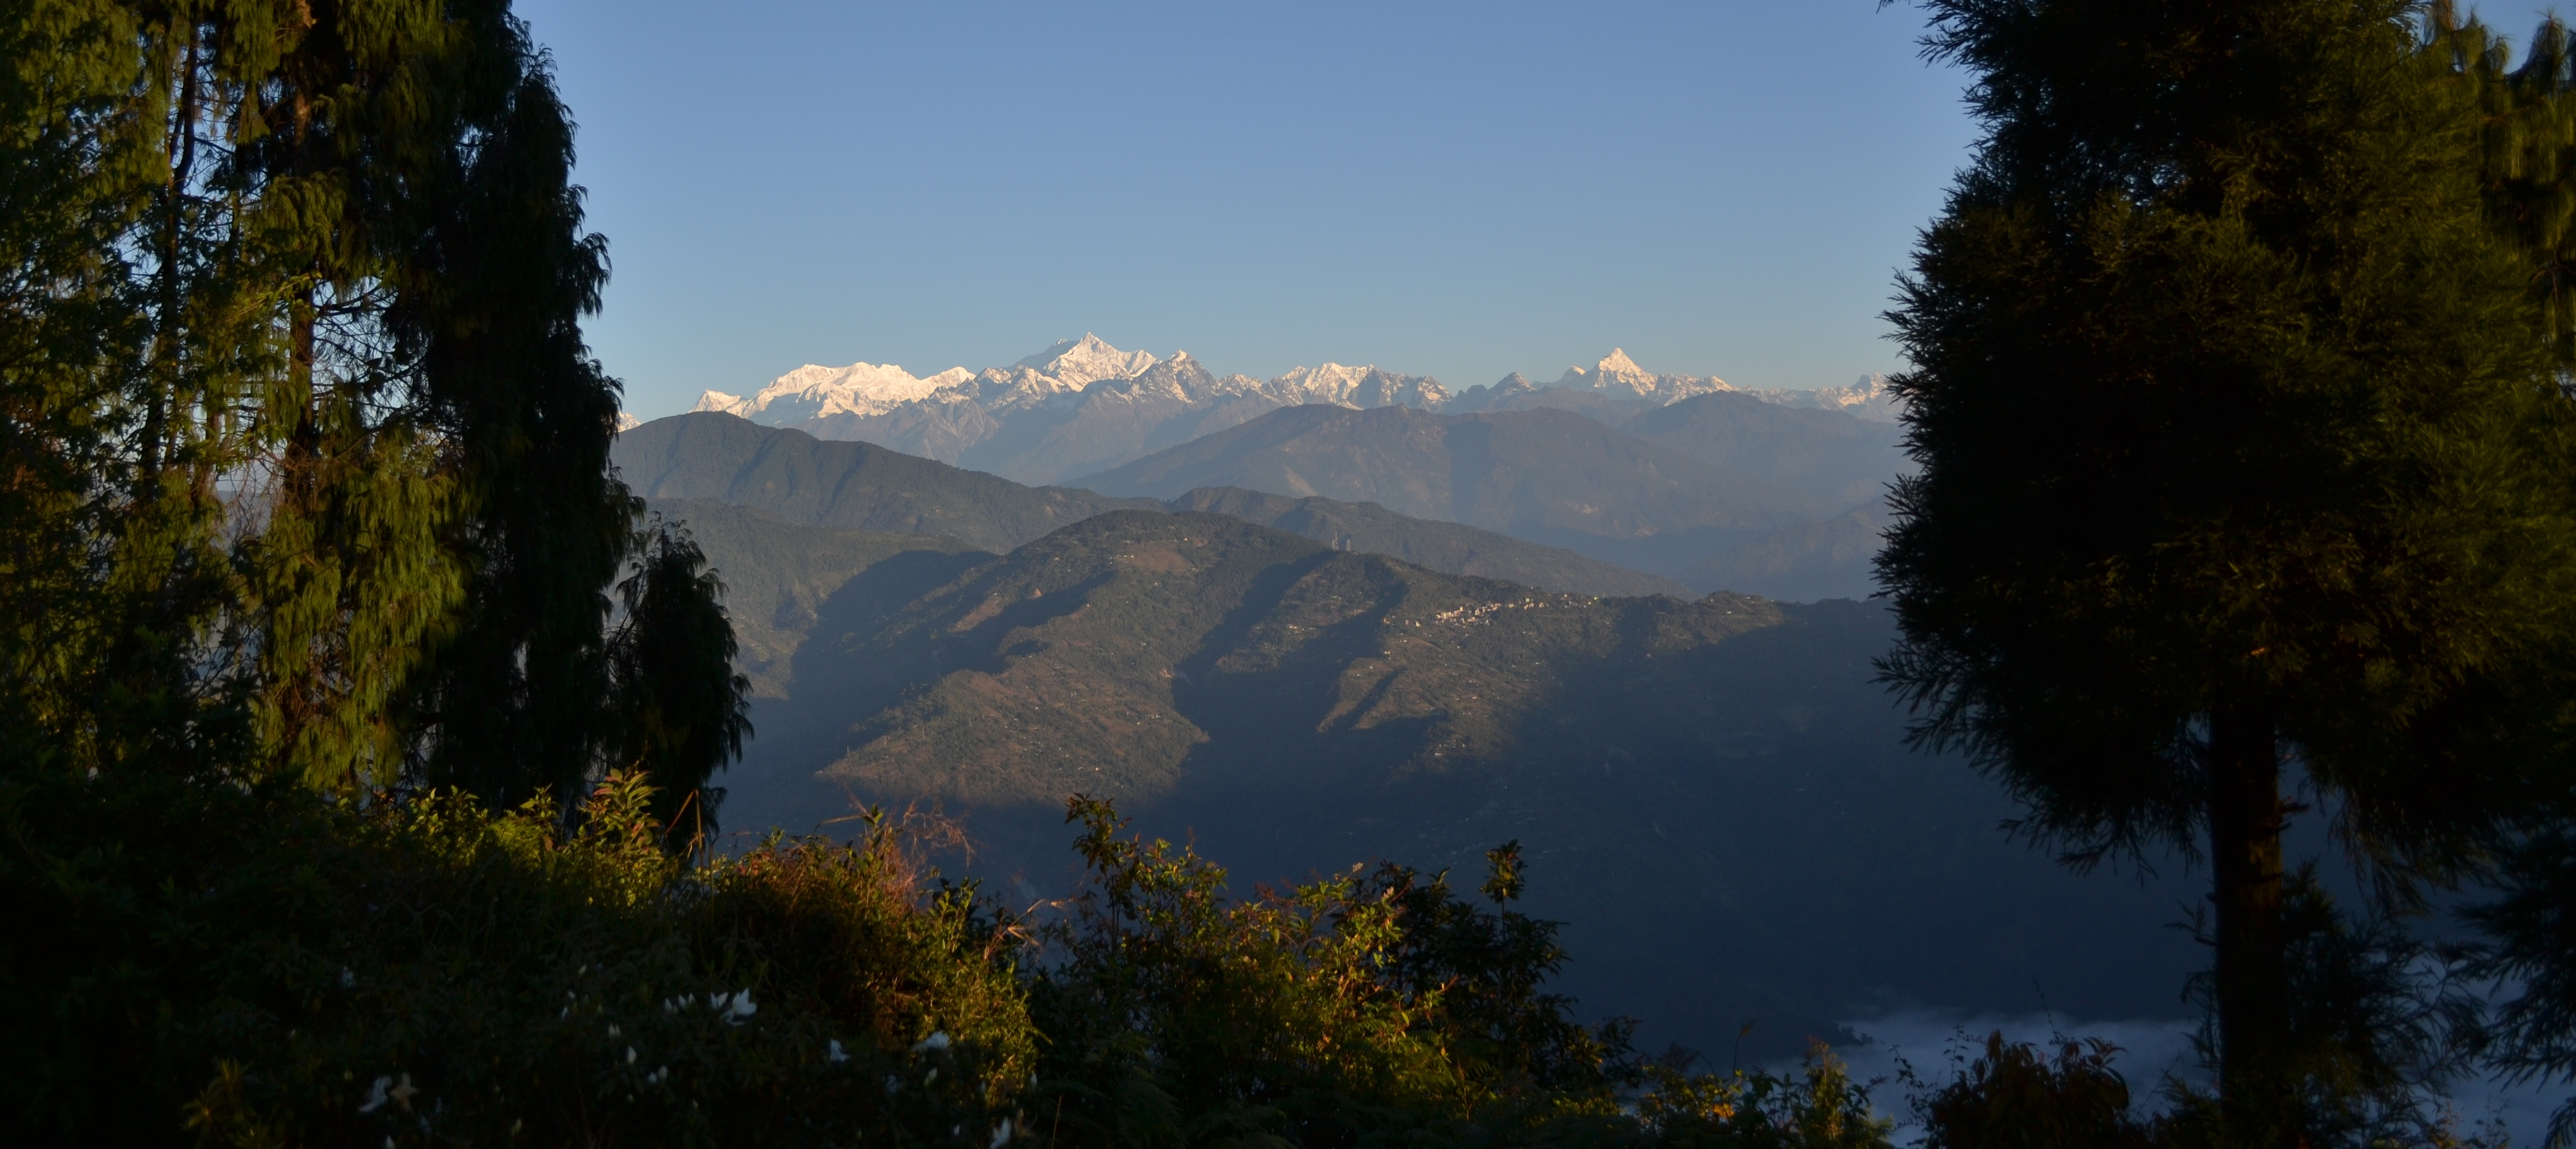 kanchenjunga from Deolo.